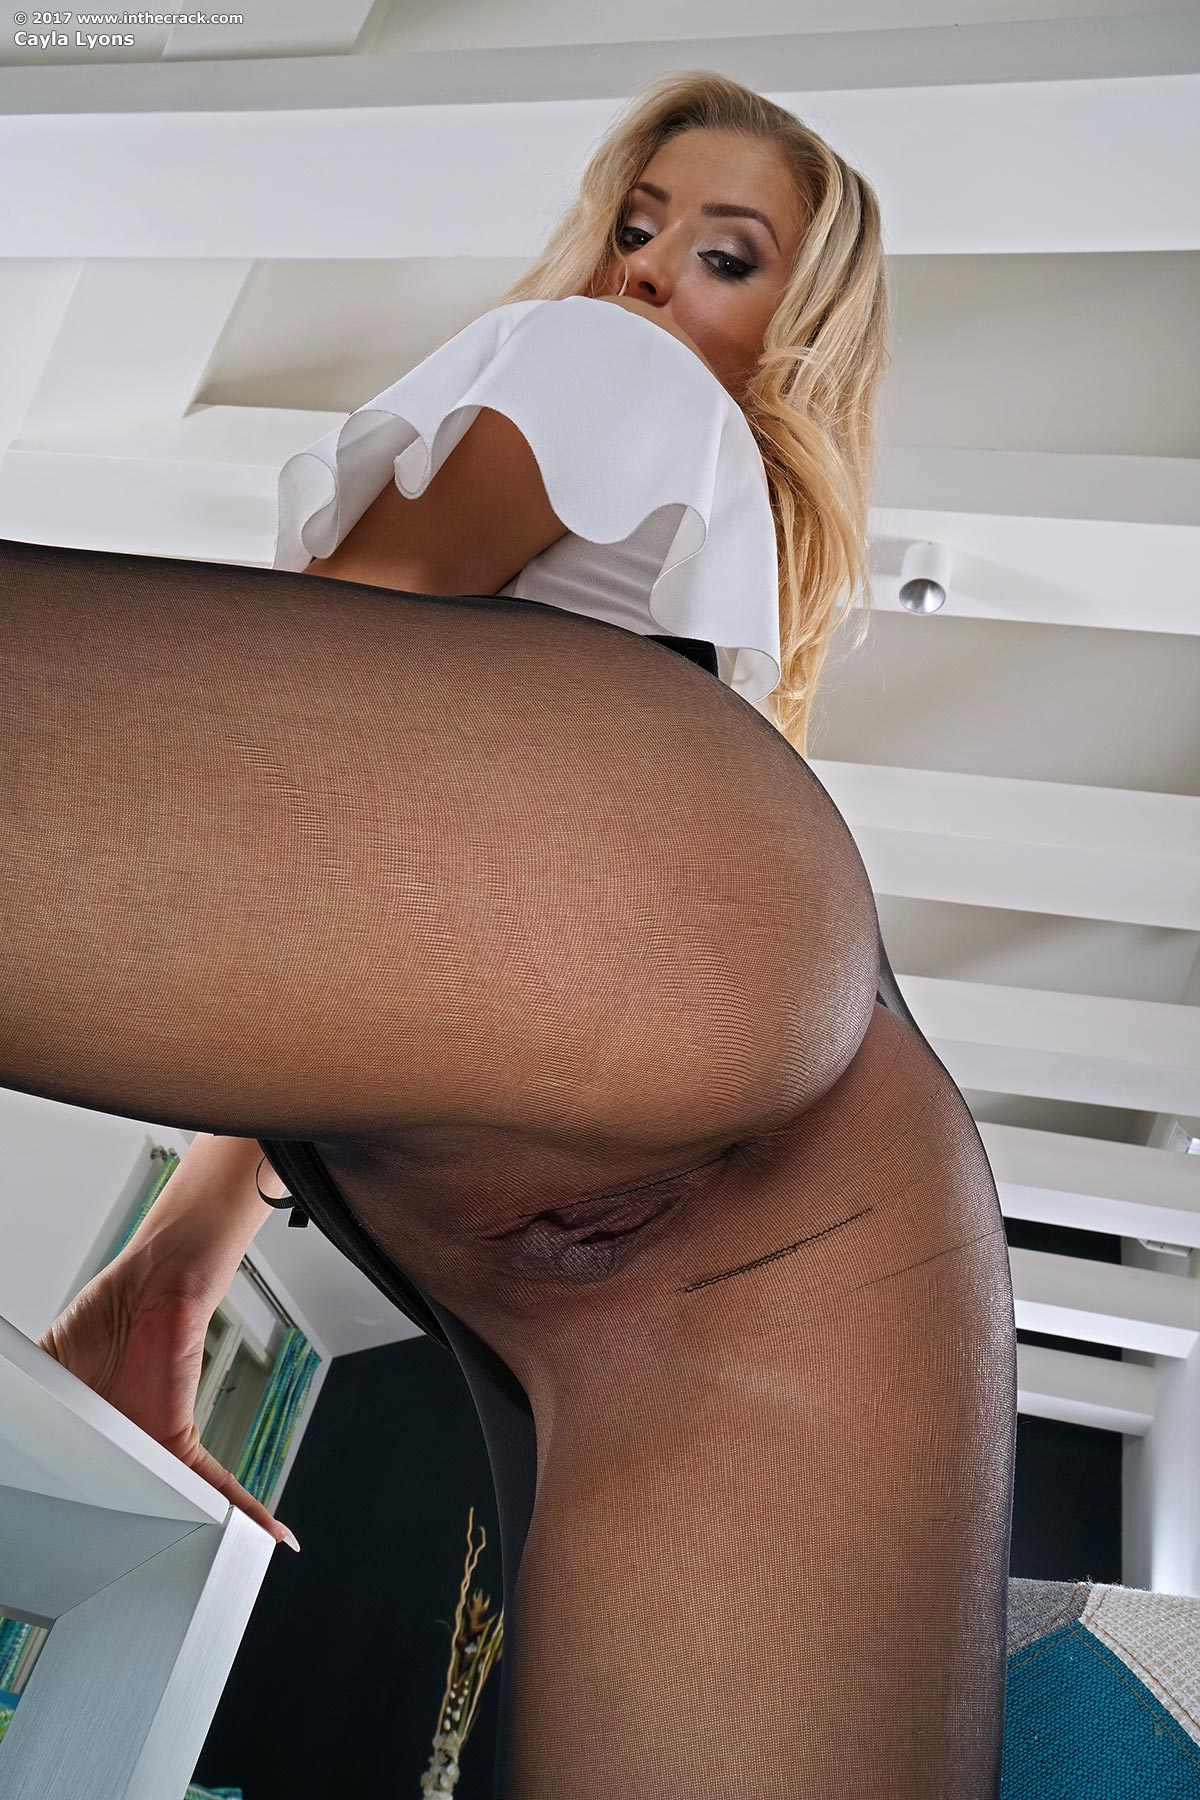 Cayla Lyons hot blonde in black pantyhose InTheCrack pics